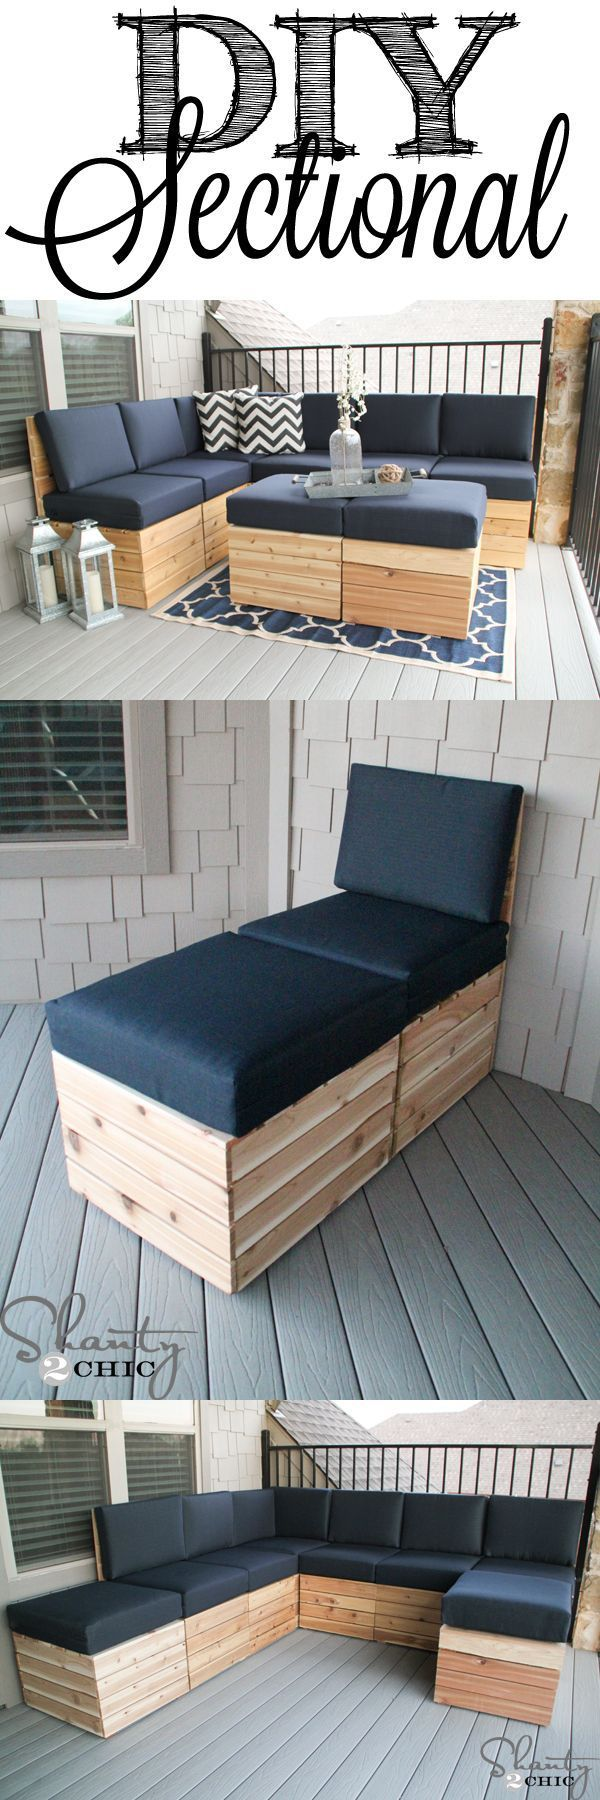 61 best diy couch ideas images on pinterest diy couch for Sofa modular jardin